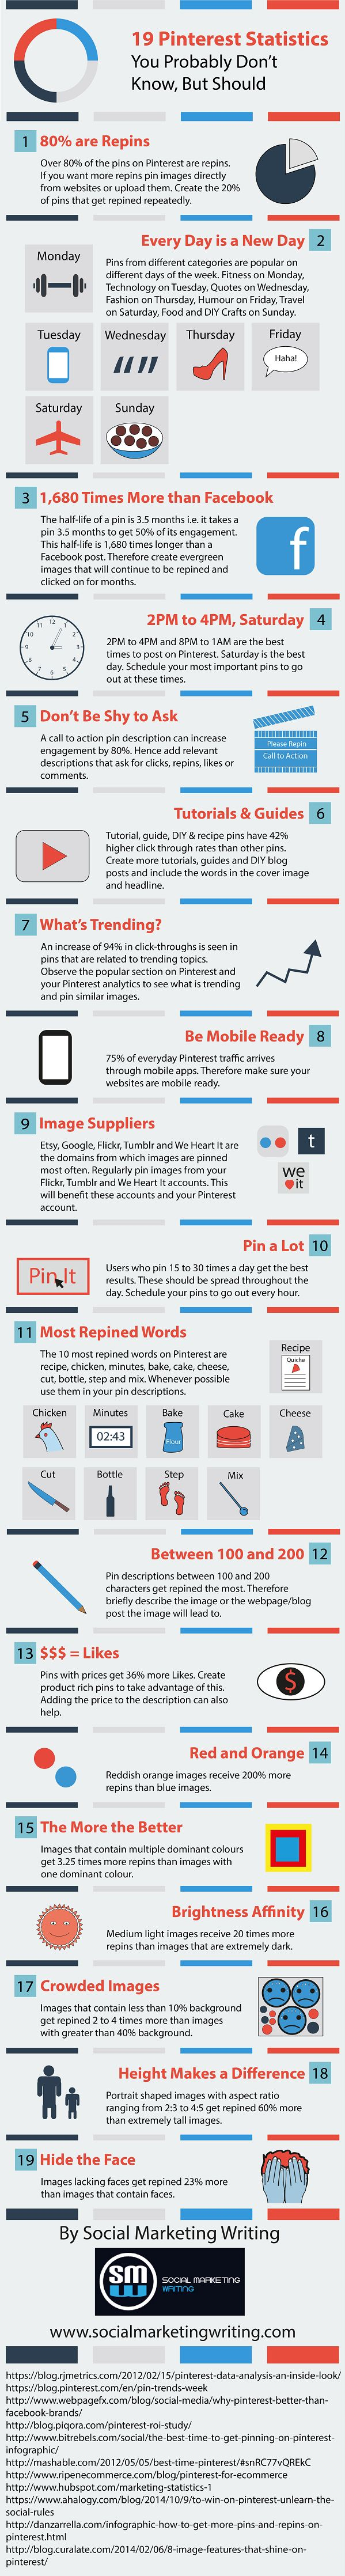 19 Pinterest Statistics You Probably Don't Know, But Should  [by Social Marketing Writing -- via #tipsographic]. More at tipsographic.com